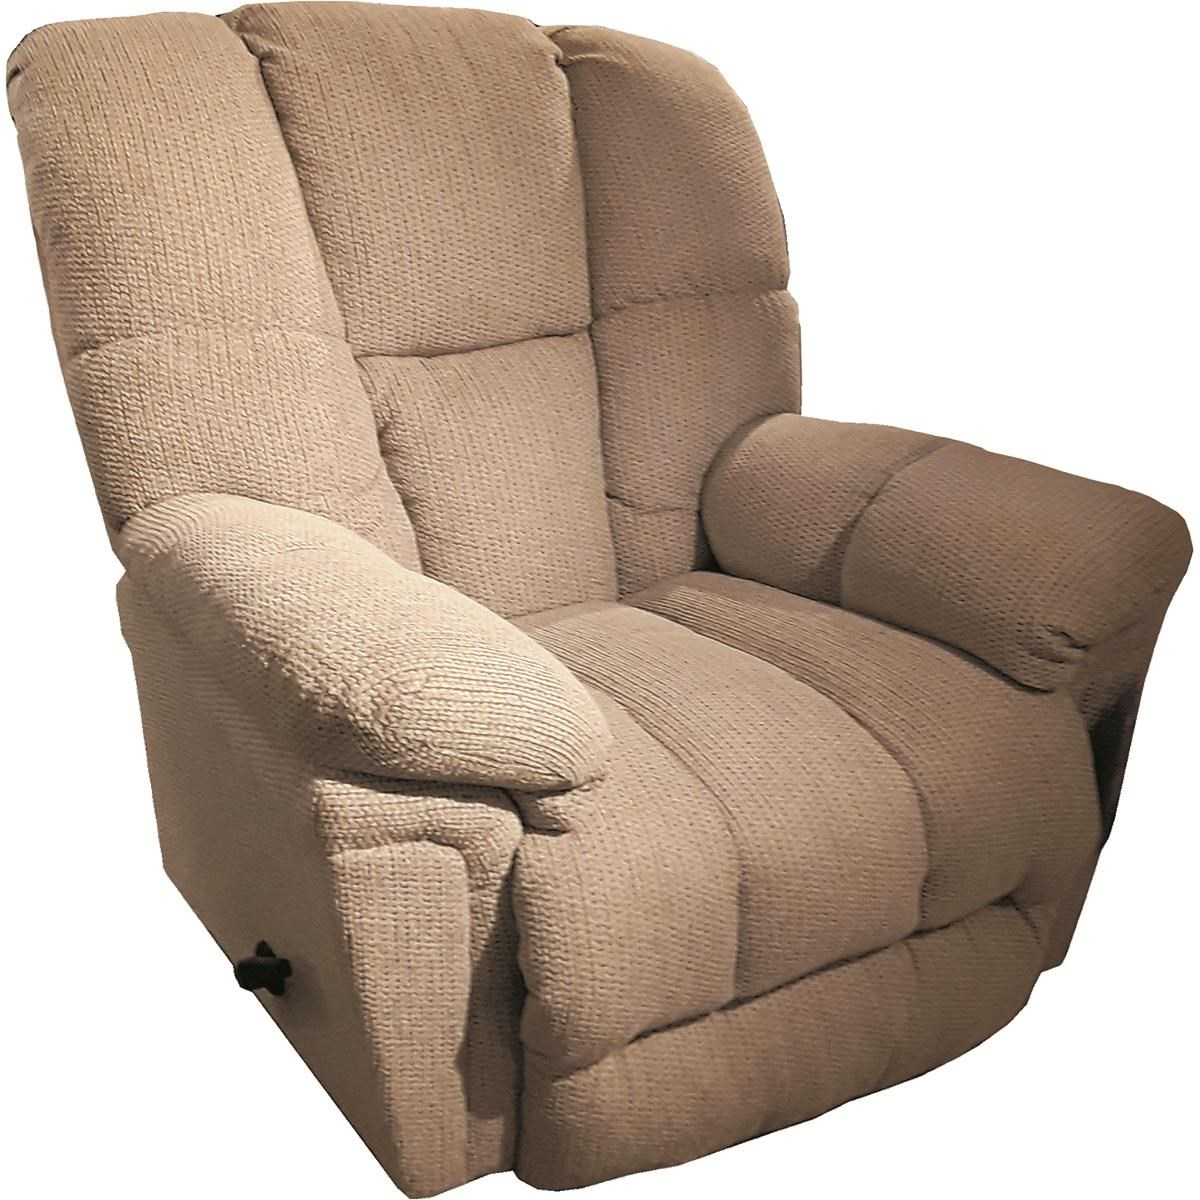 Maurer Lay Flat Rocker Recliner by Best Home Furnishings at Darvin Furniture